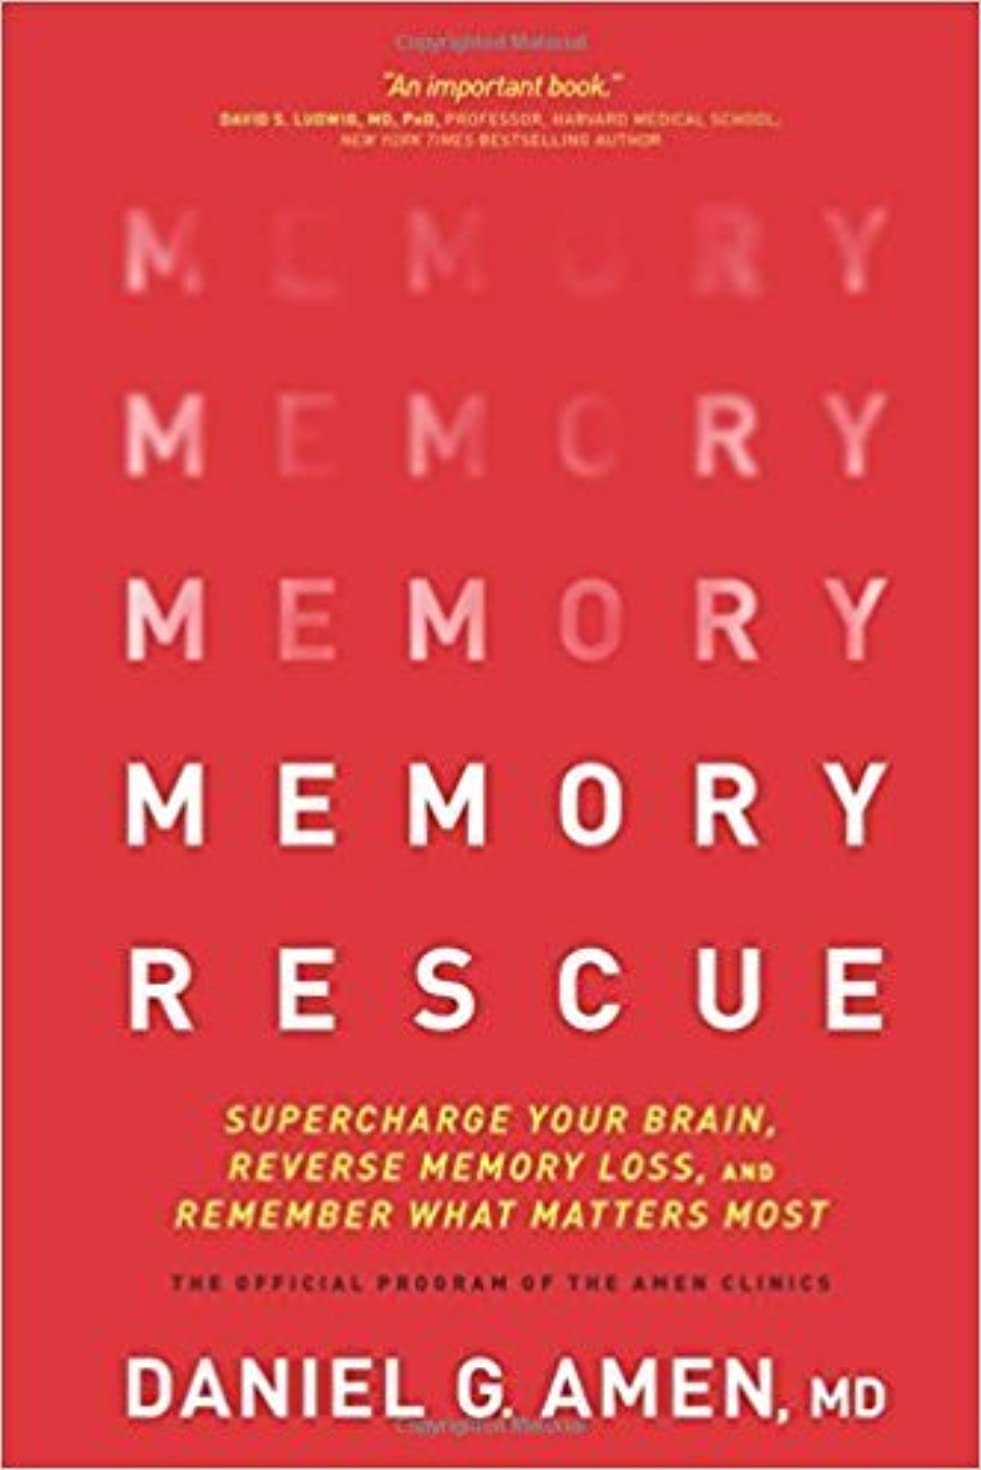 [By Daniel G Amen ] Memory Rescue: Supercharge Your Brain, Reverse Memory Loss, and Remember What Matters Most (Hardcover)【2018】by Daniel G Amen (Author) (Hardcover)